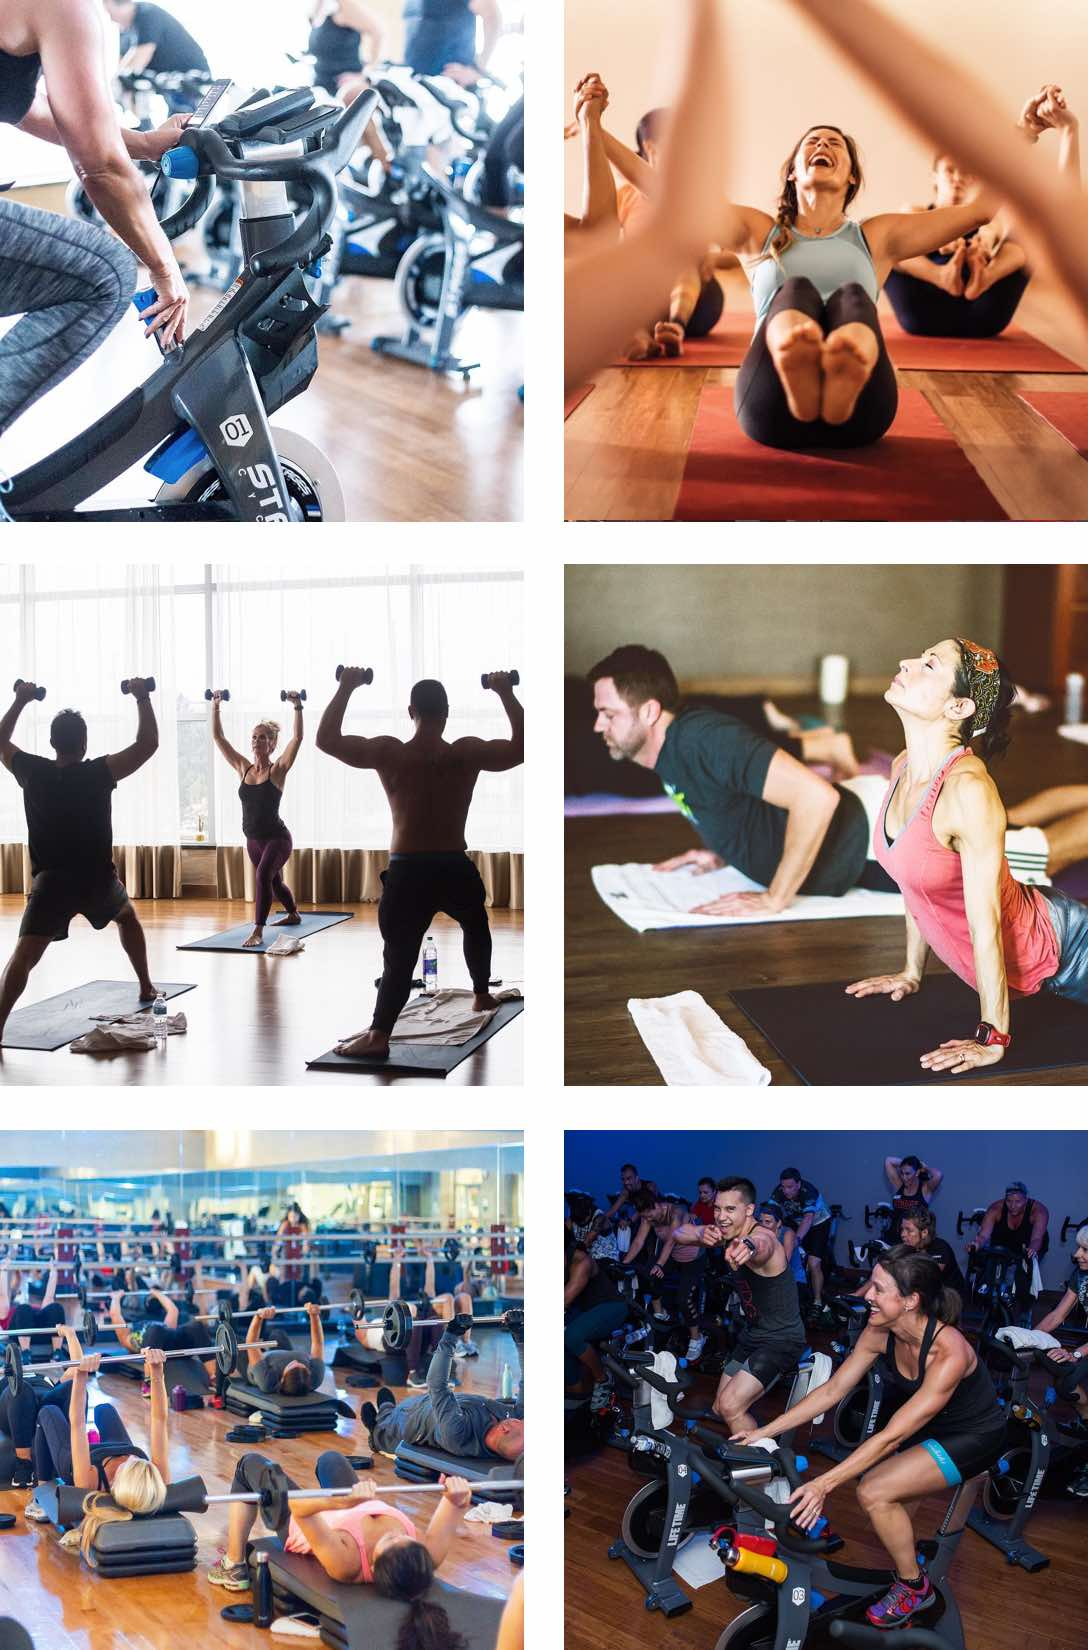 People working out in a variety of group fitness, yoga and cycle classes at Life Time.